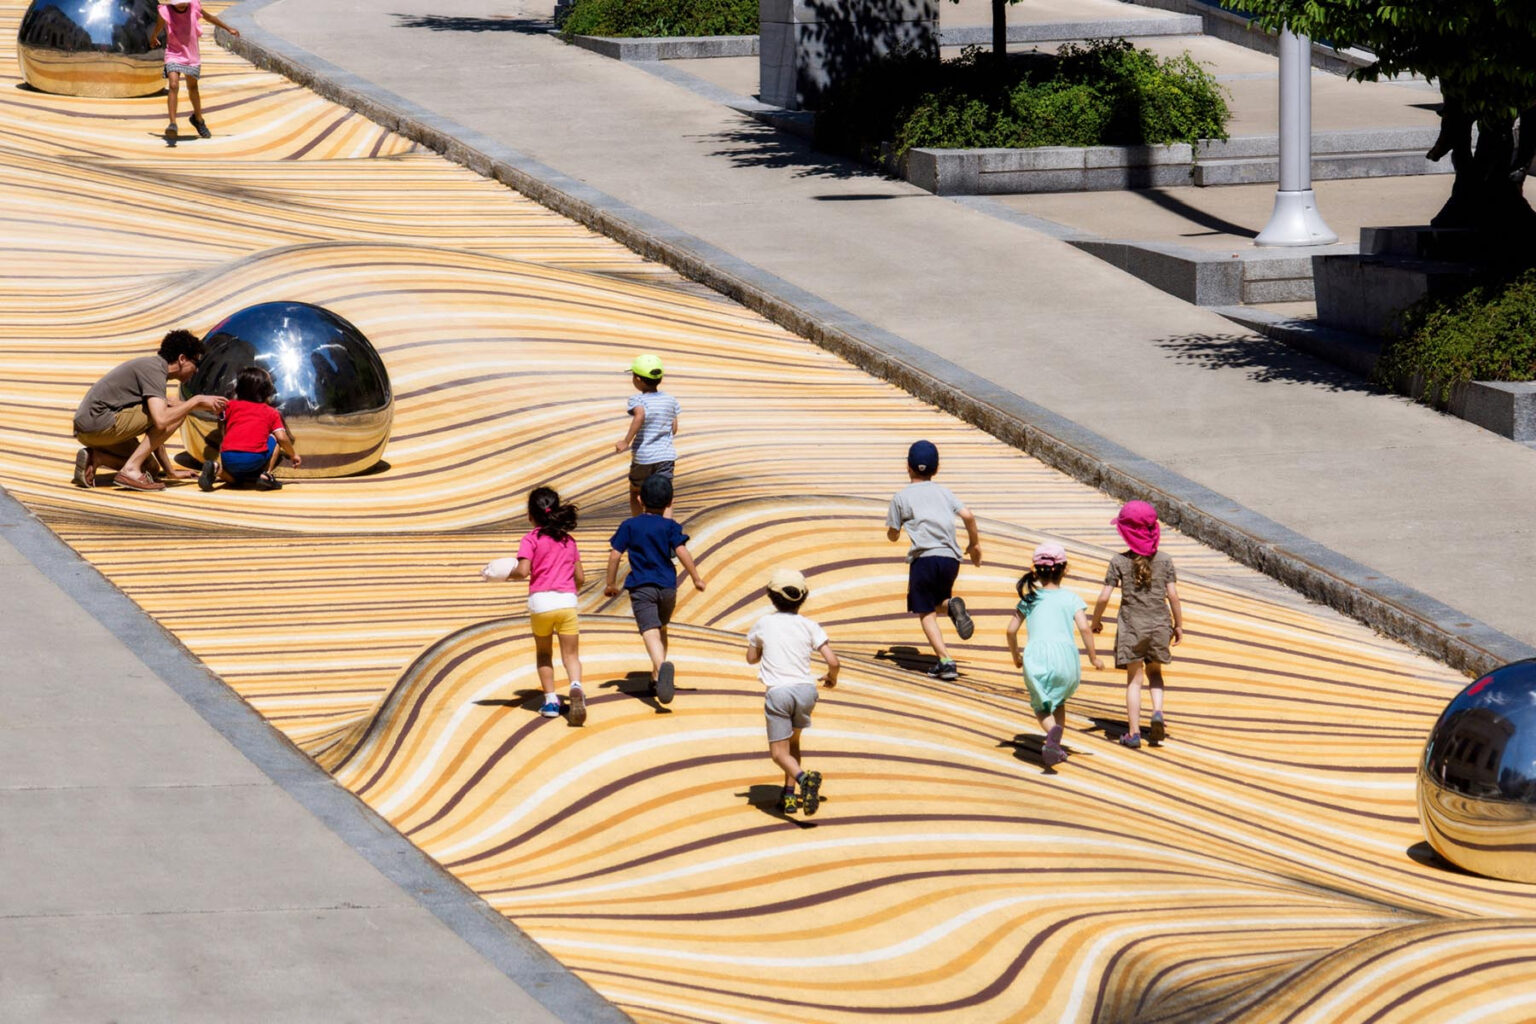 Impressive Moving Dunes Optical Illusion